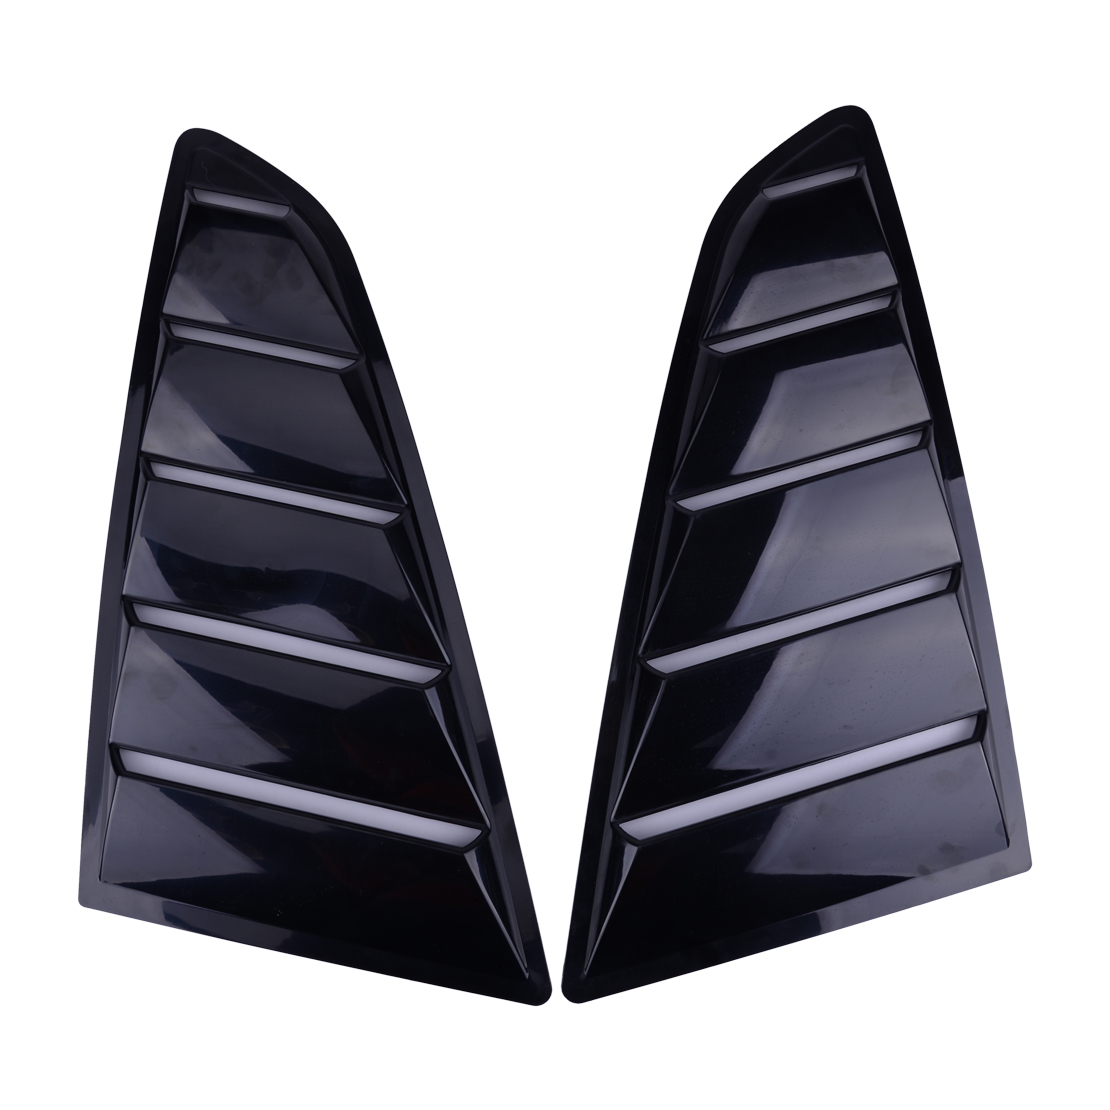 DWCX Side Black ABS Deflector Vent Window Scoop Louver Cover Trim Sticker Fit For <font><b>Ford</b></font> <font><b>Mustang</b></font> <font><b>2015</b></font> 2016 2017 2018 image